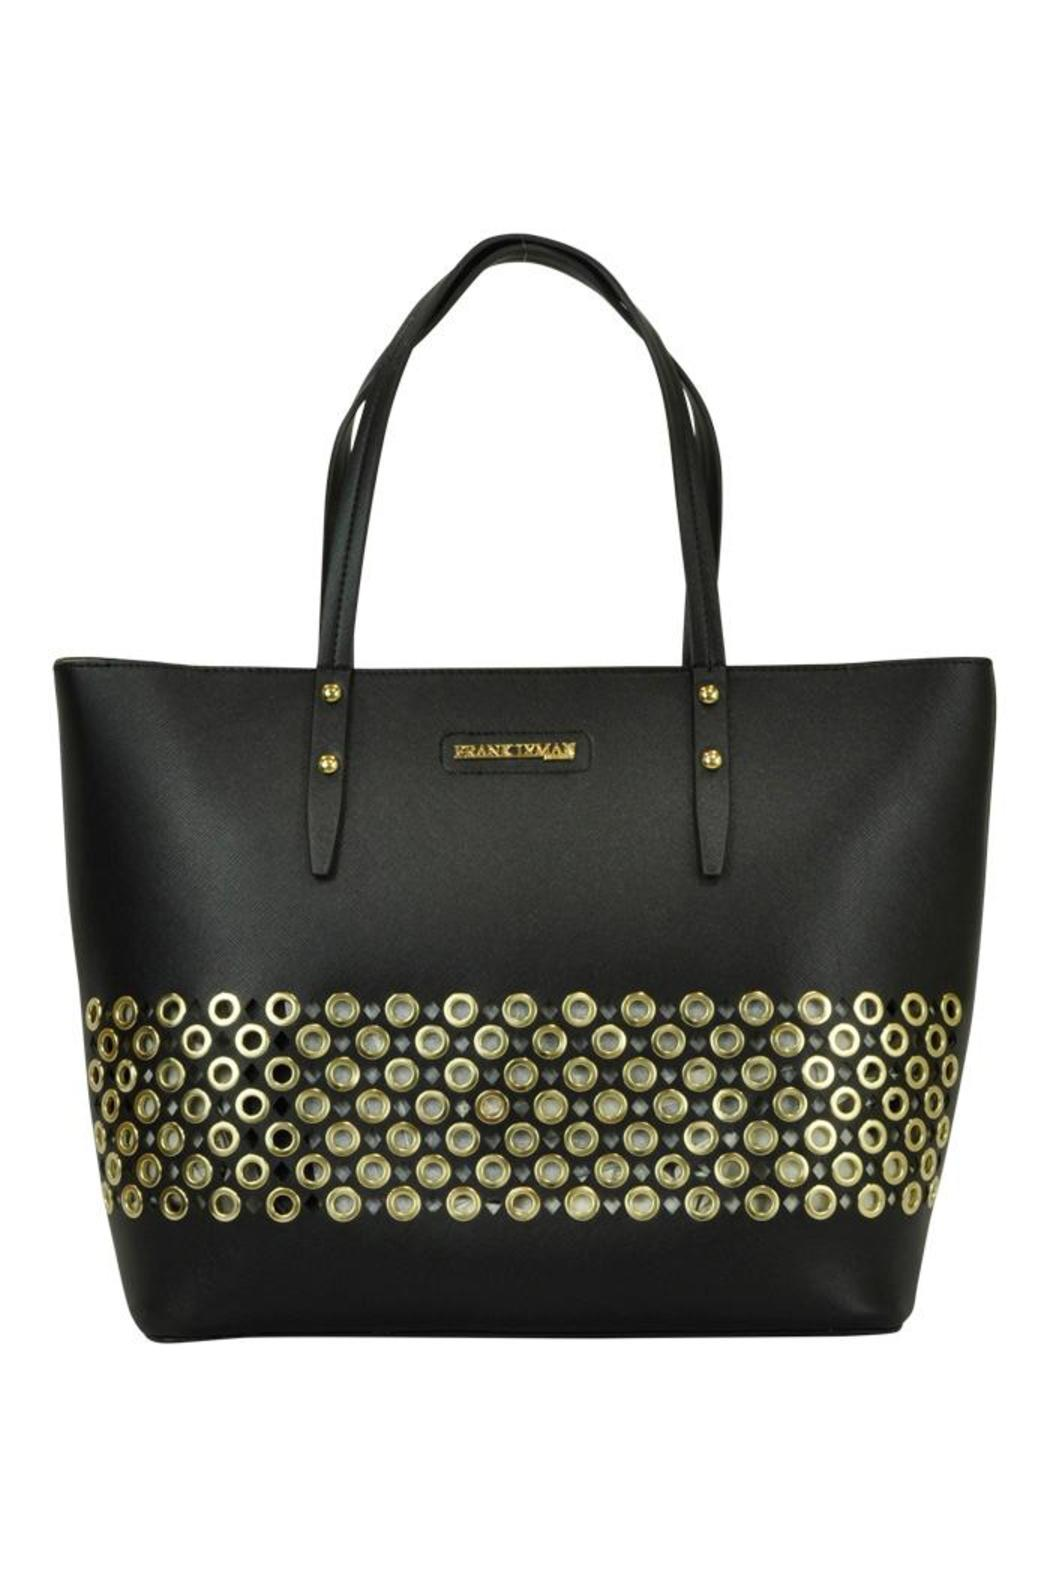 Frank Lyman Gold Circle Tote - Front Cropped Image